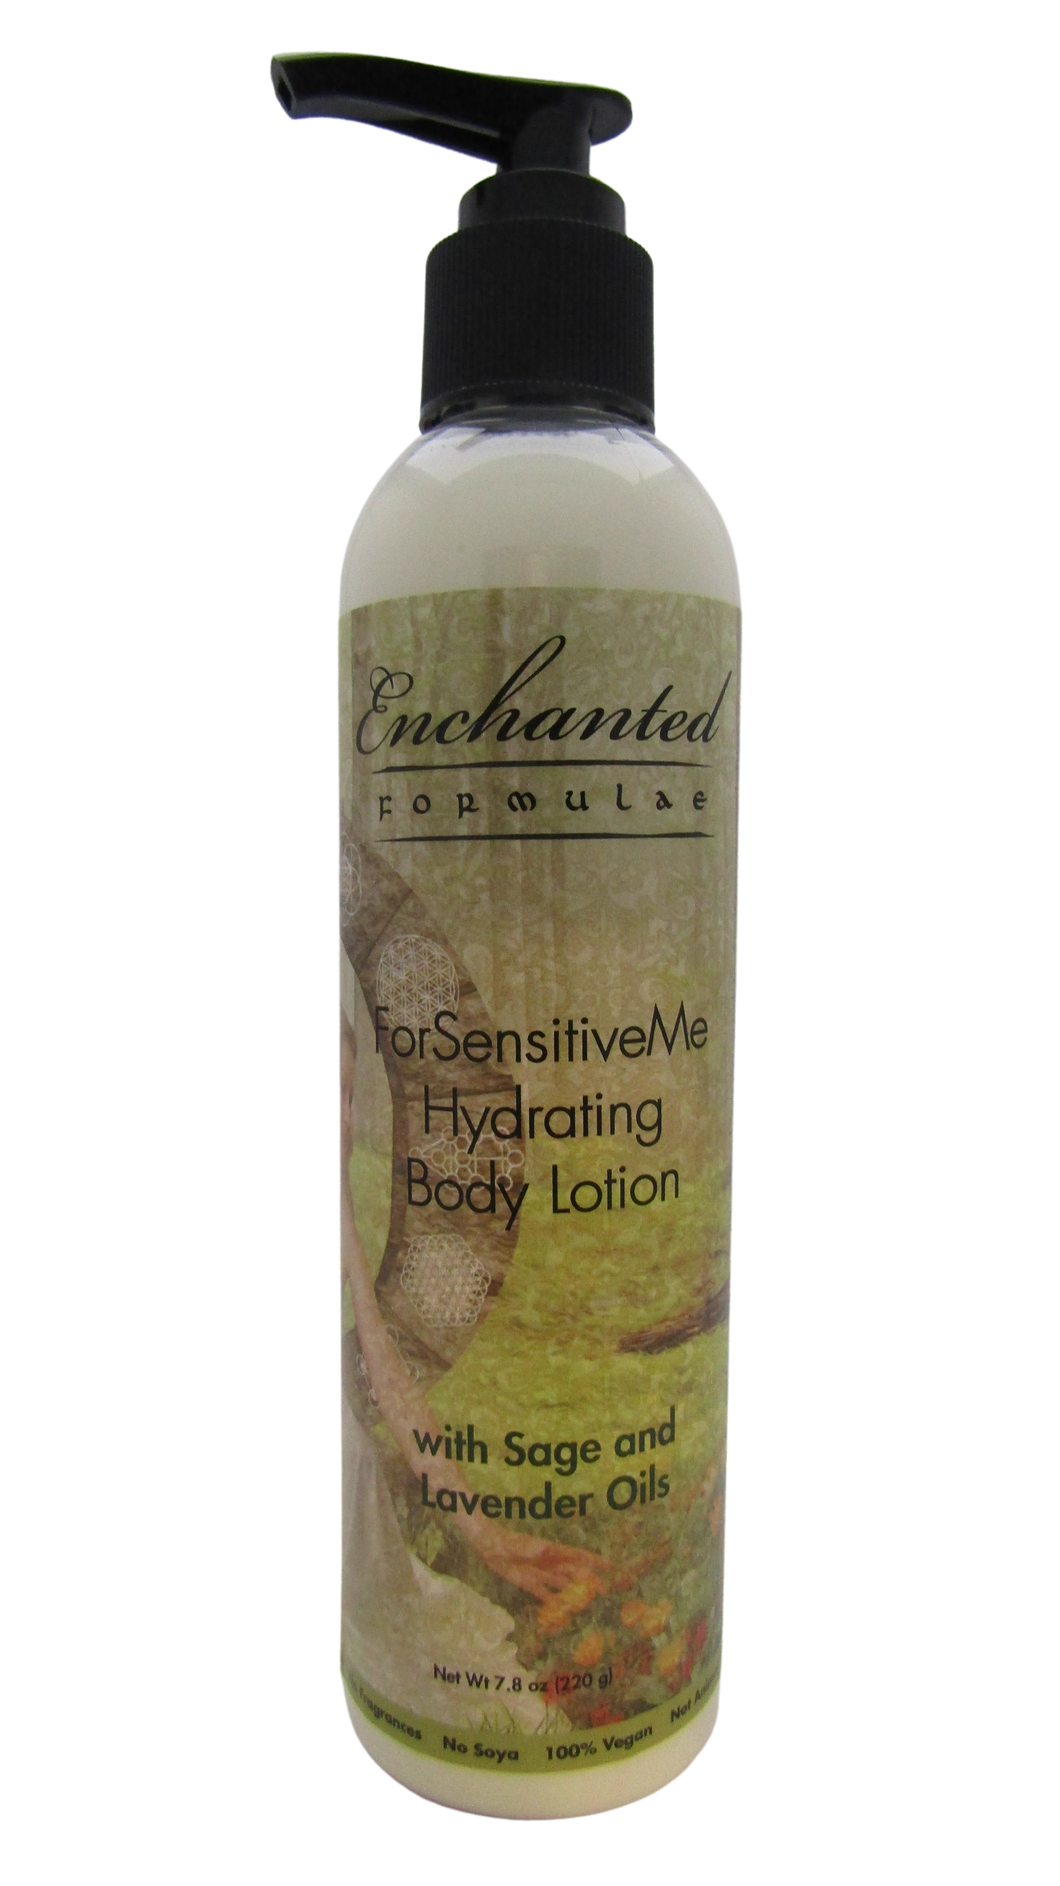 HYDRATING BODY LOTION ForSensitiveMe